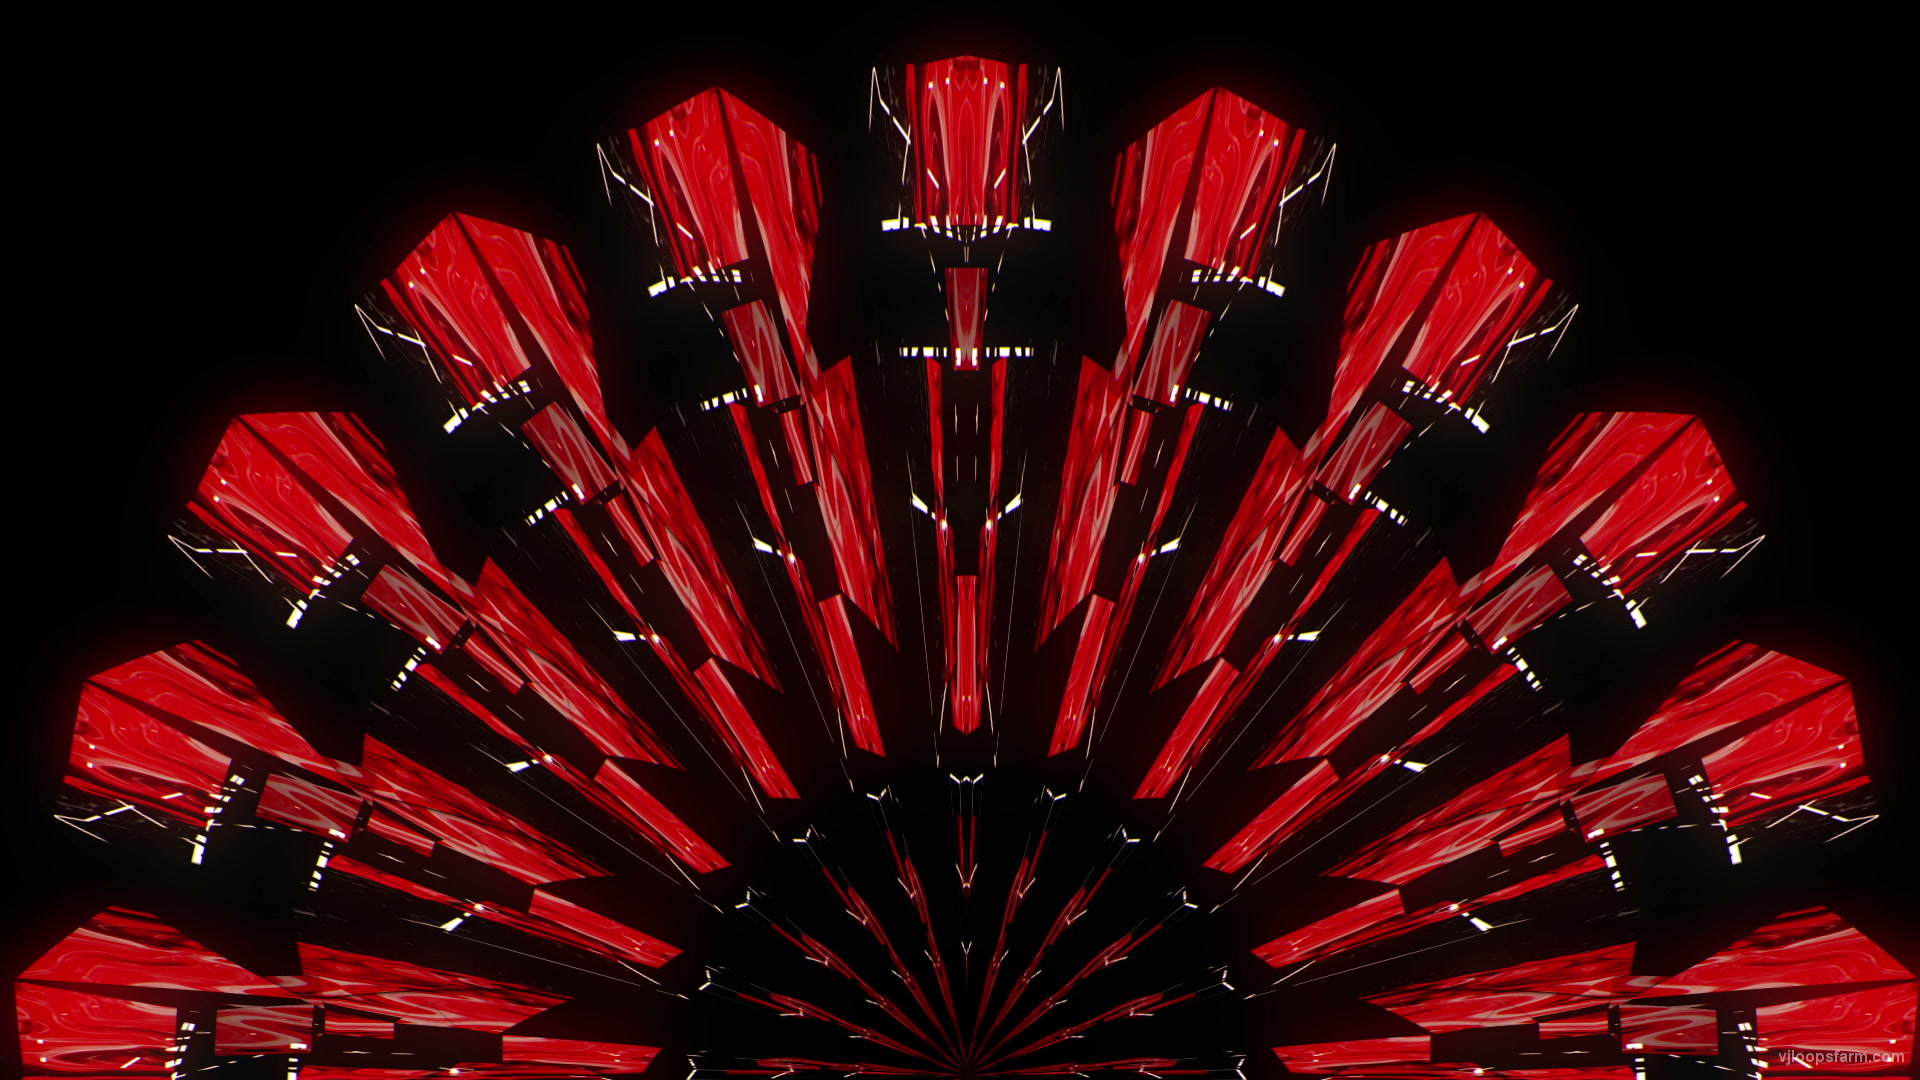 vj video background Heartbeat-Diadora-B1_1_1920x1080_29fps_VJLoop_LIMEART_003